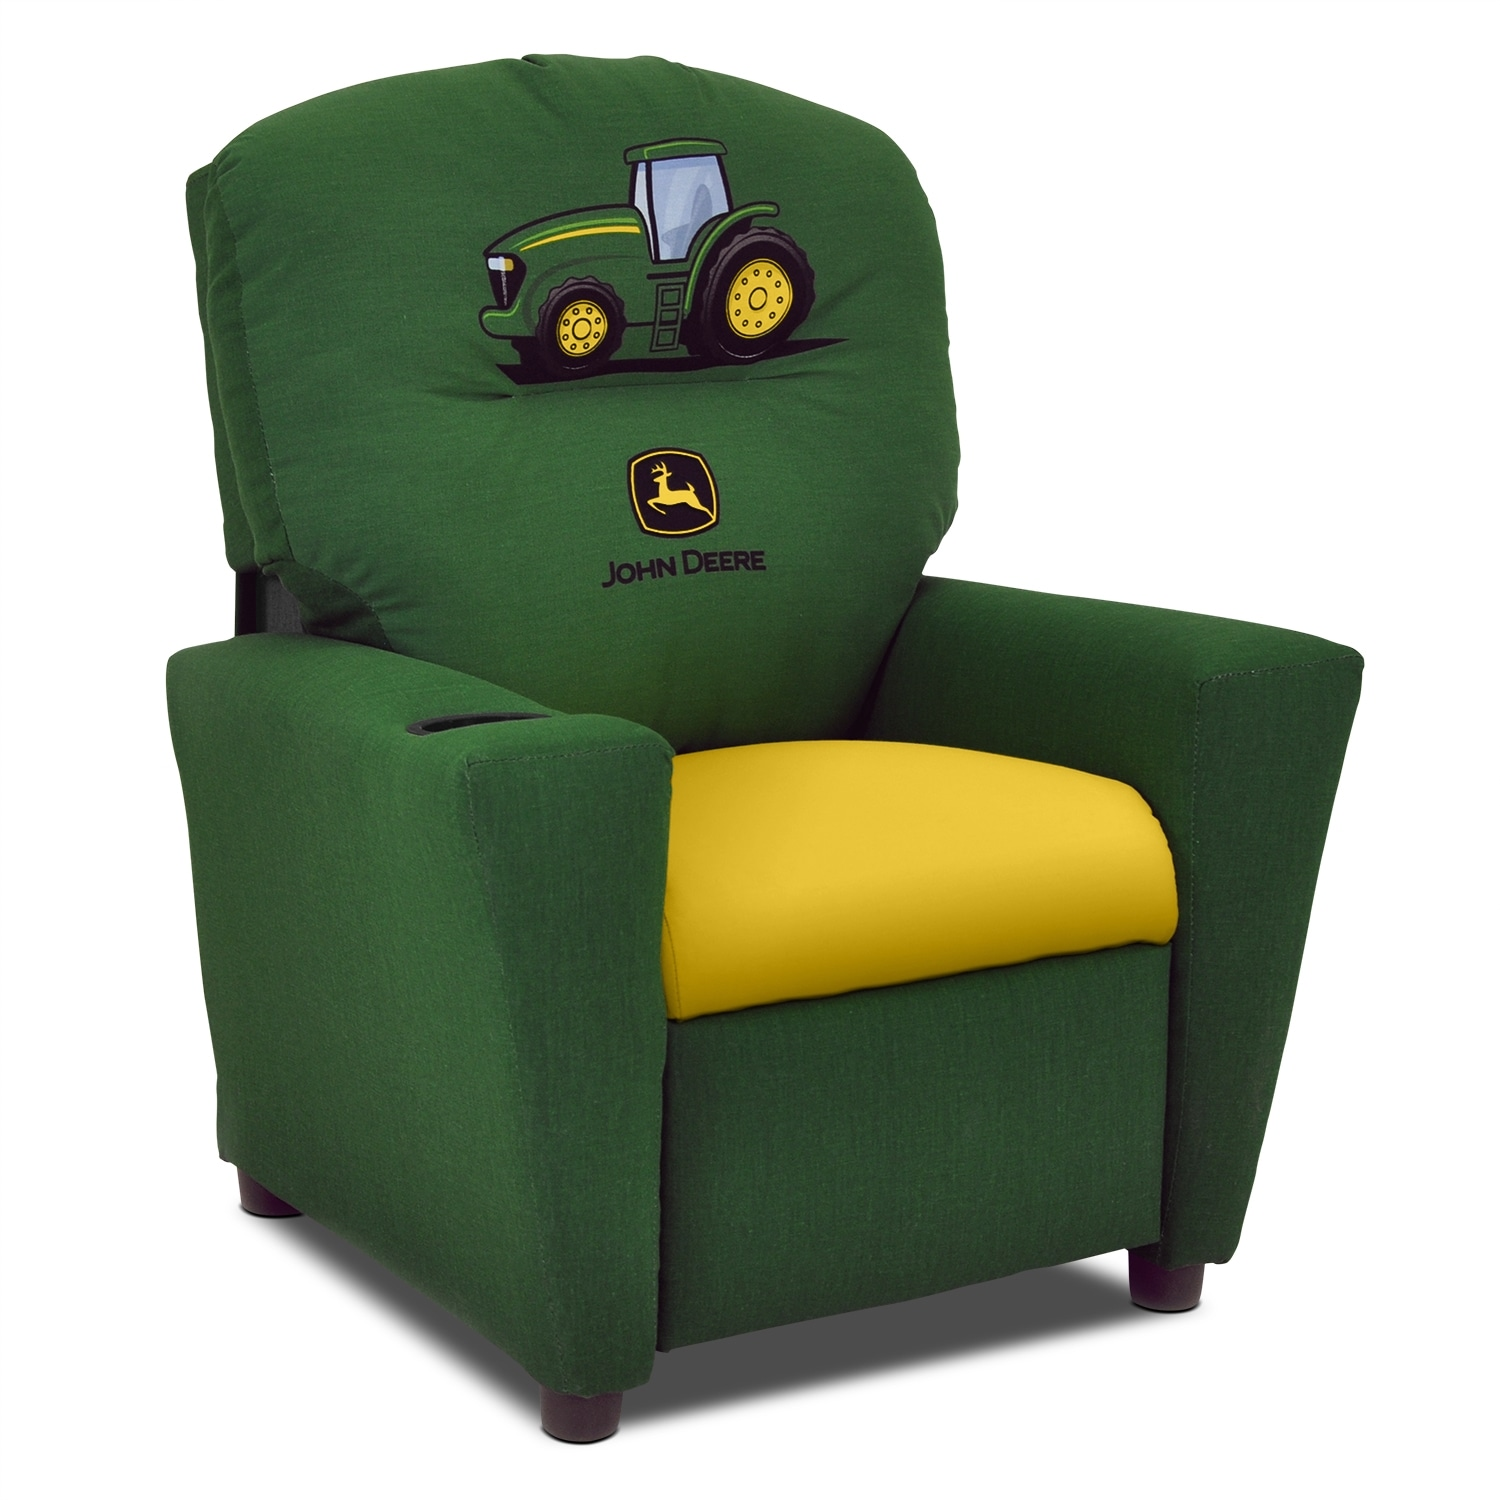 Click to change image.  sc 1 st  American Signature Furniture & John Deere Childu0027s Recliner - Green | American Signature Furniture islam-shia.org